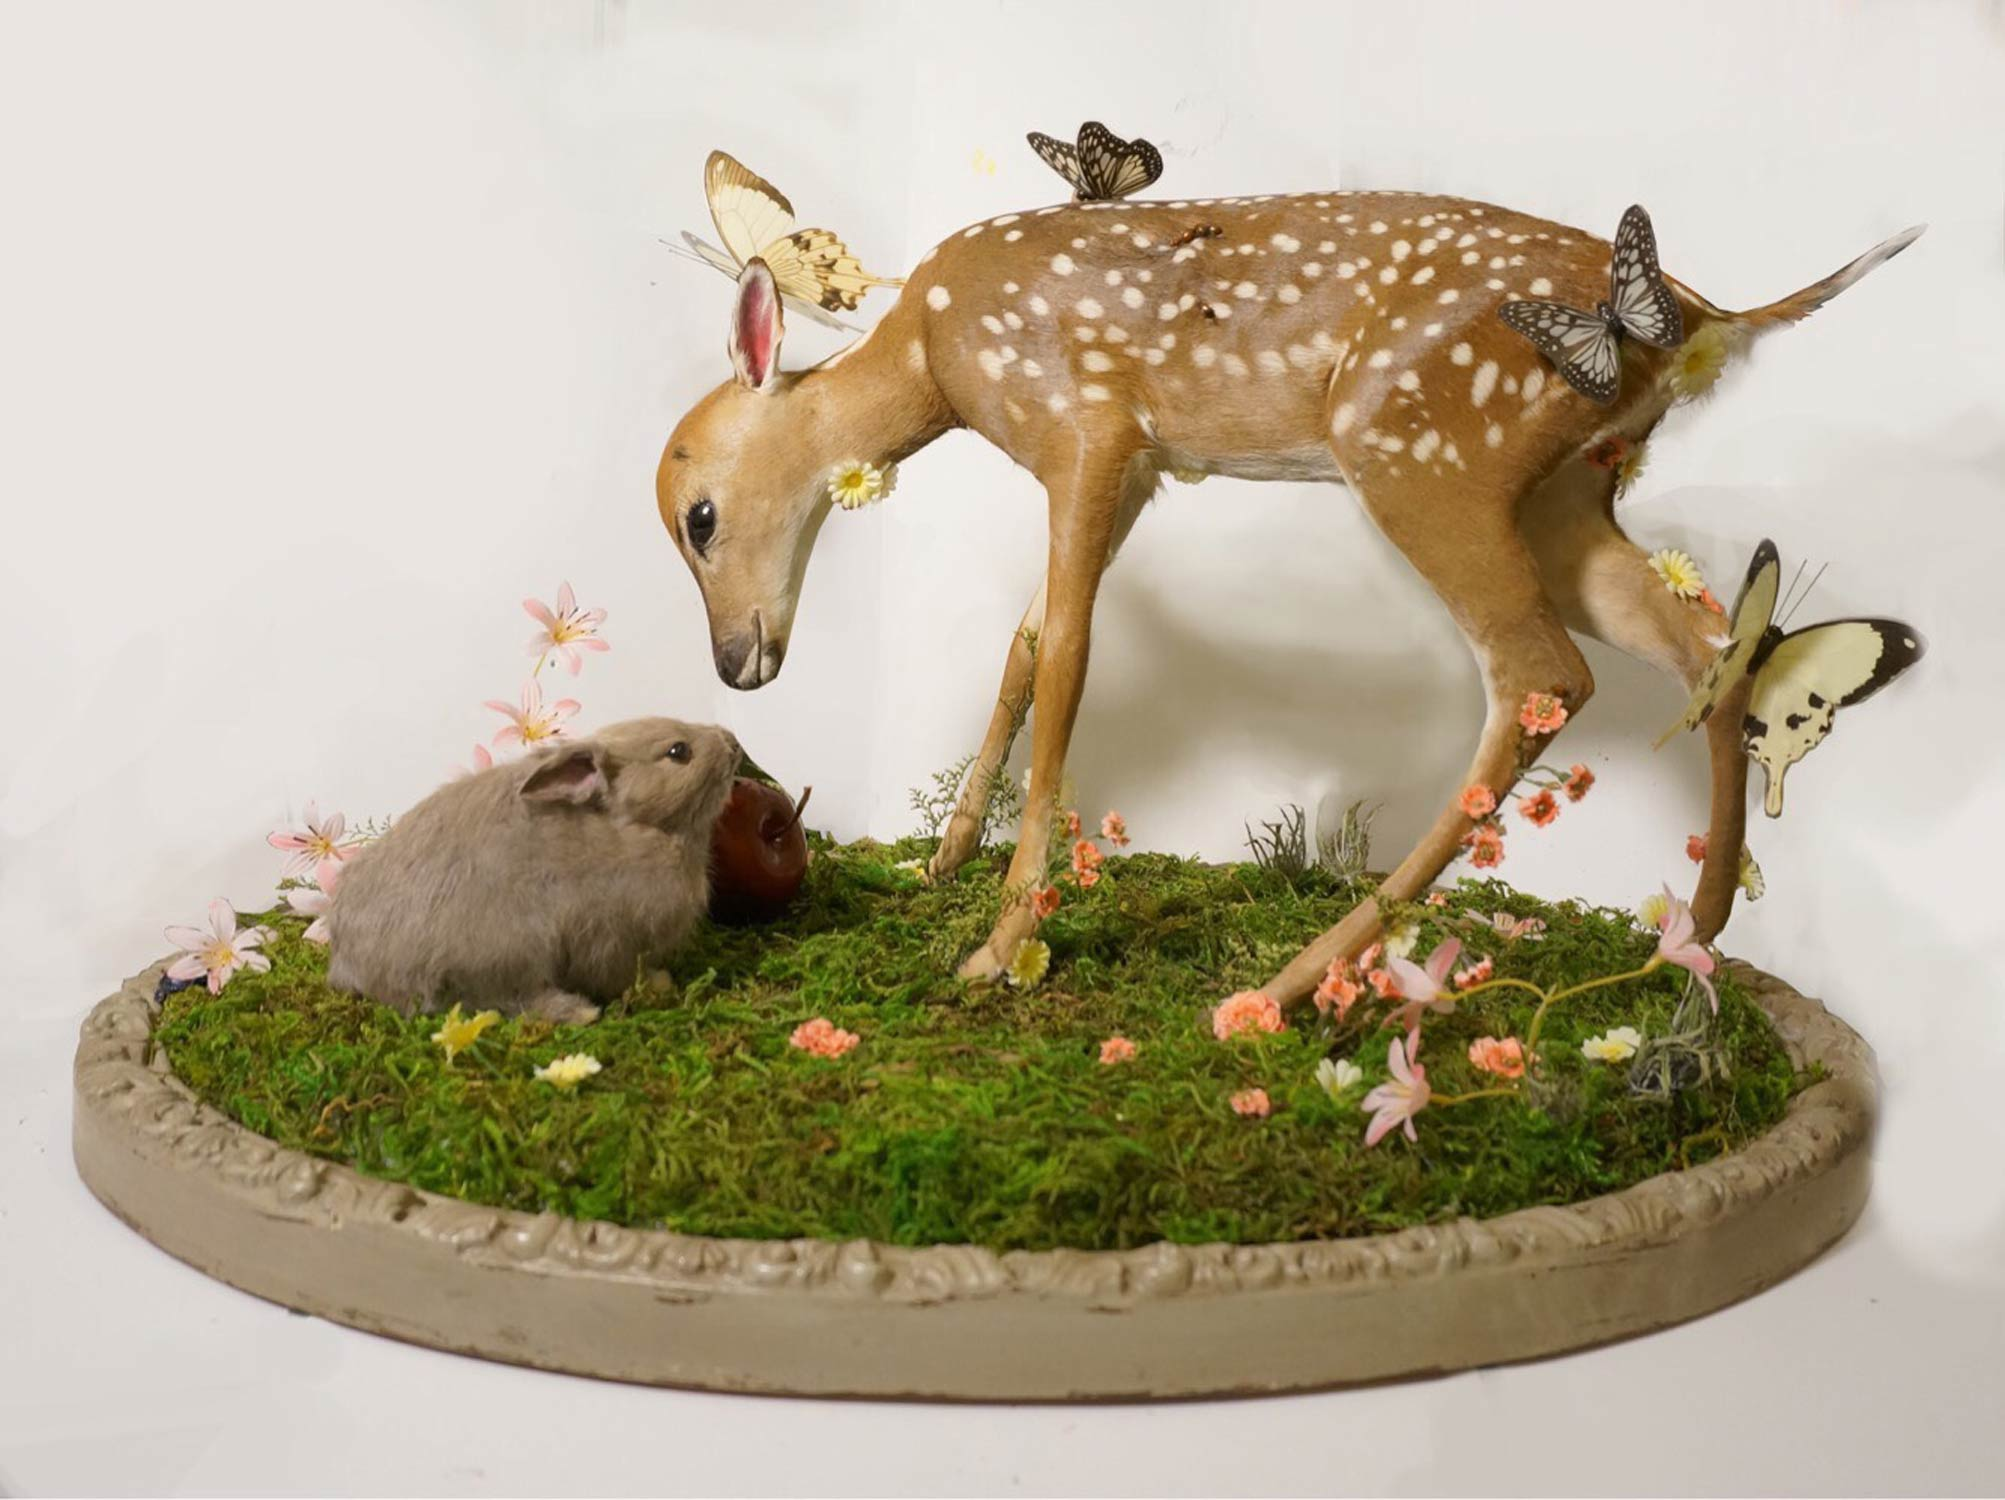 Taxidermy by Divya Anantharaman